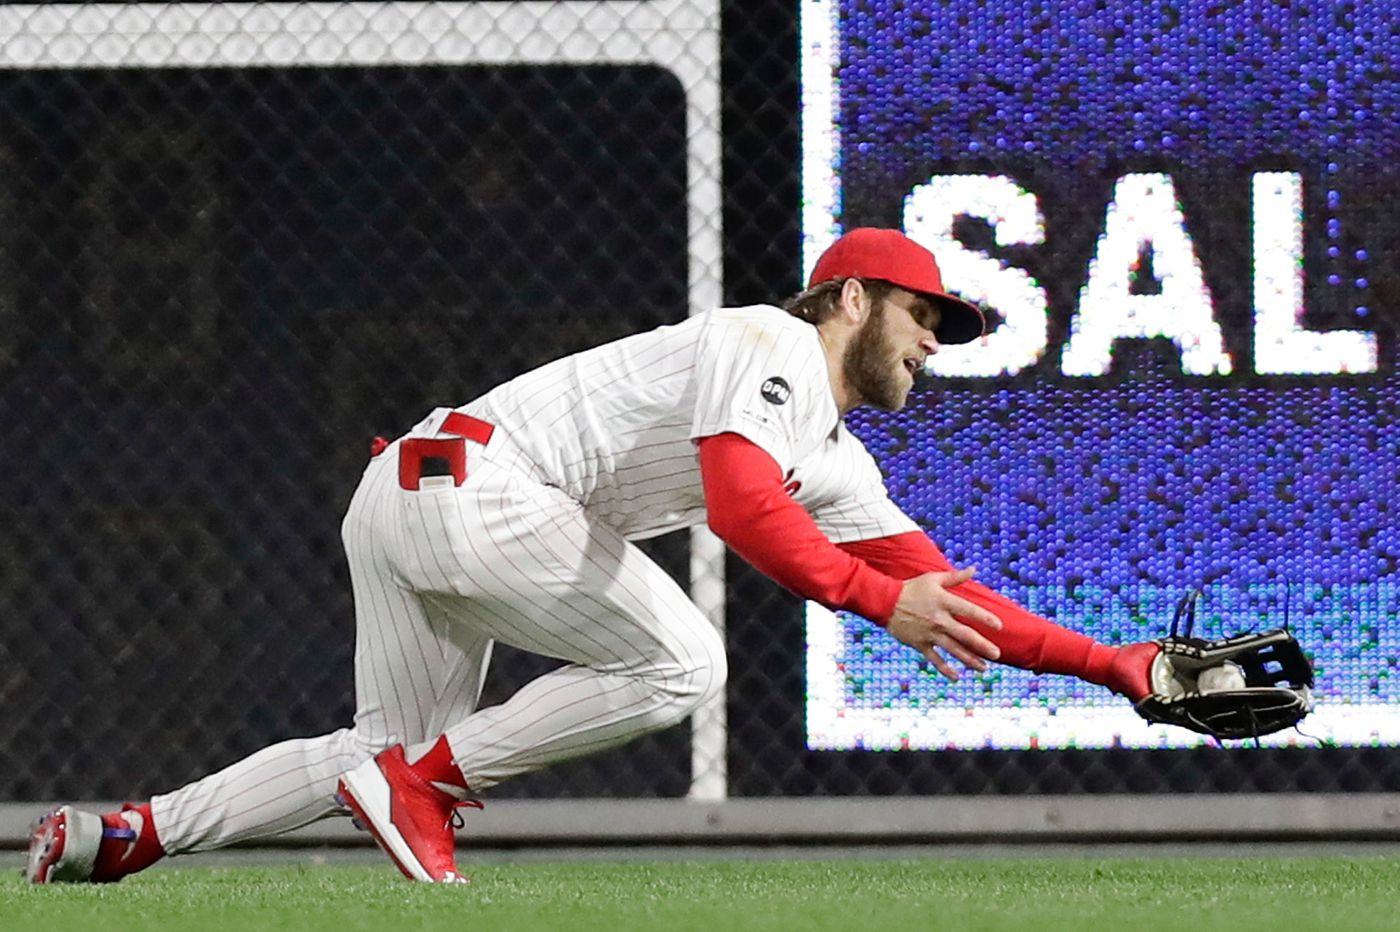 Phillies rally after Bryce Harper's diving catch, beat Brewers, 7-4